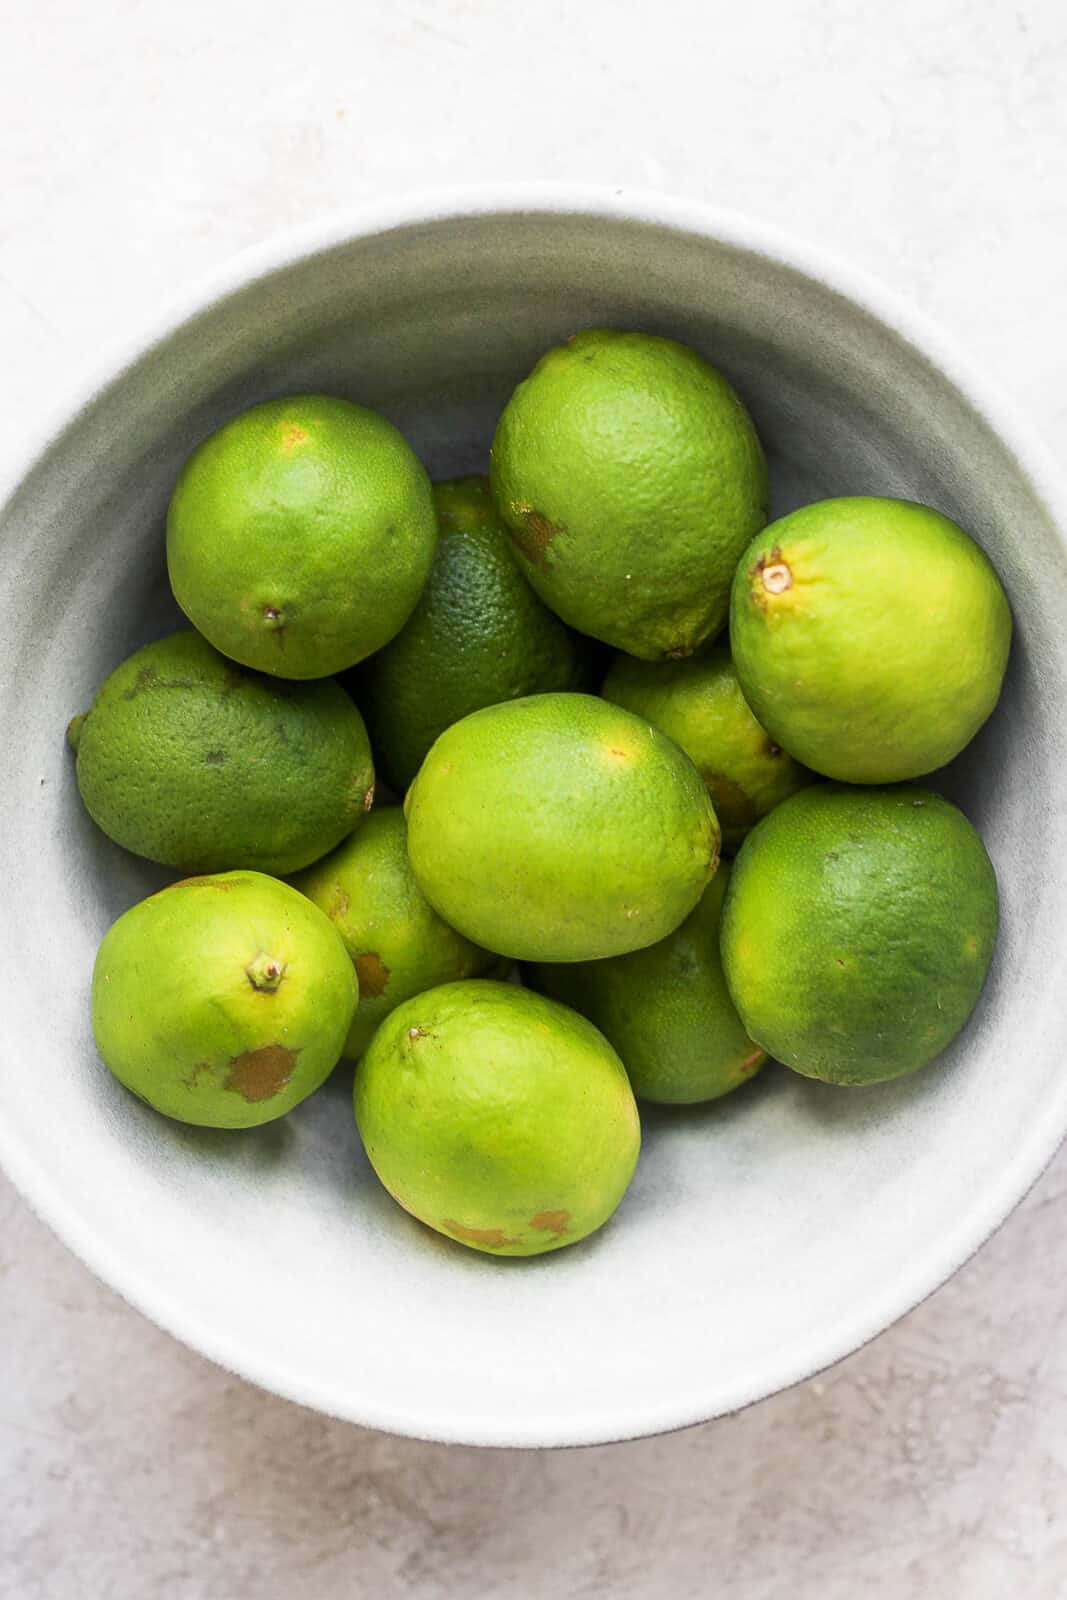 Bowl of limes.